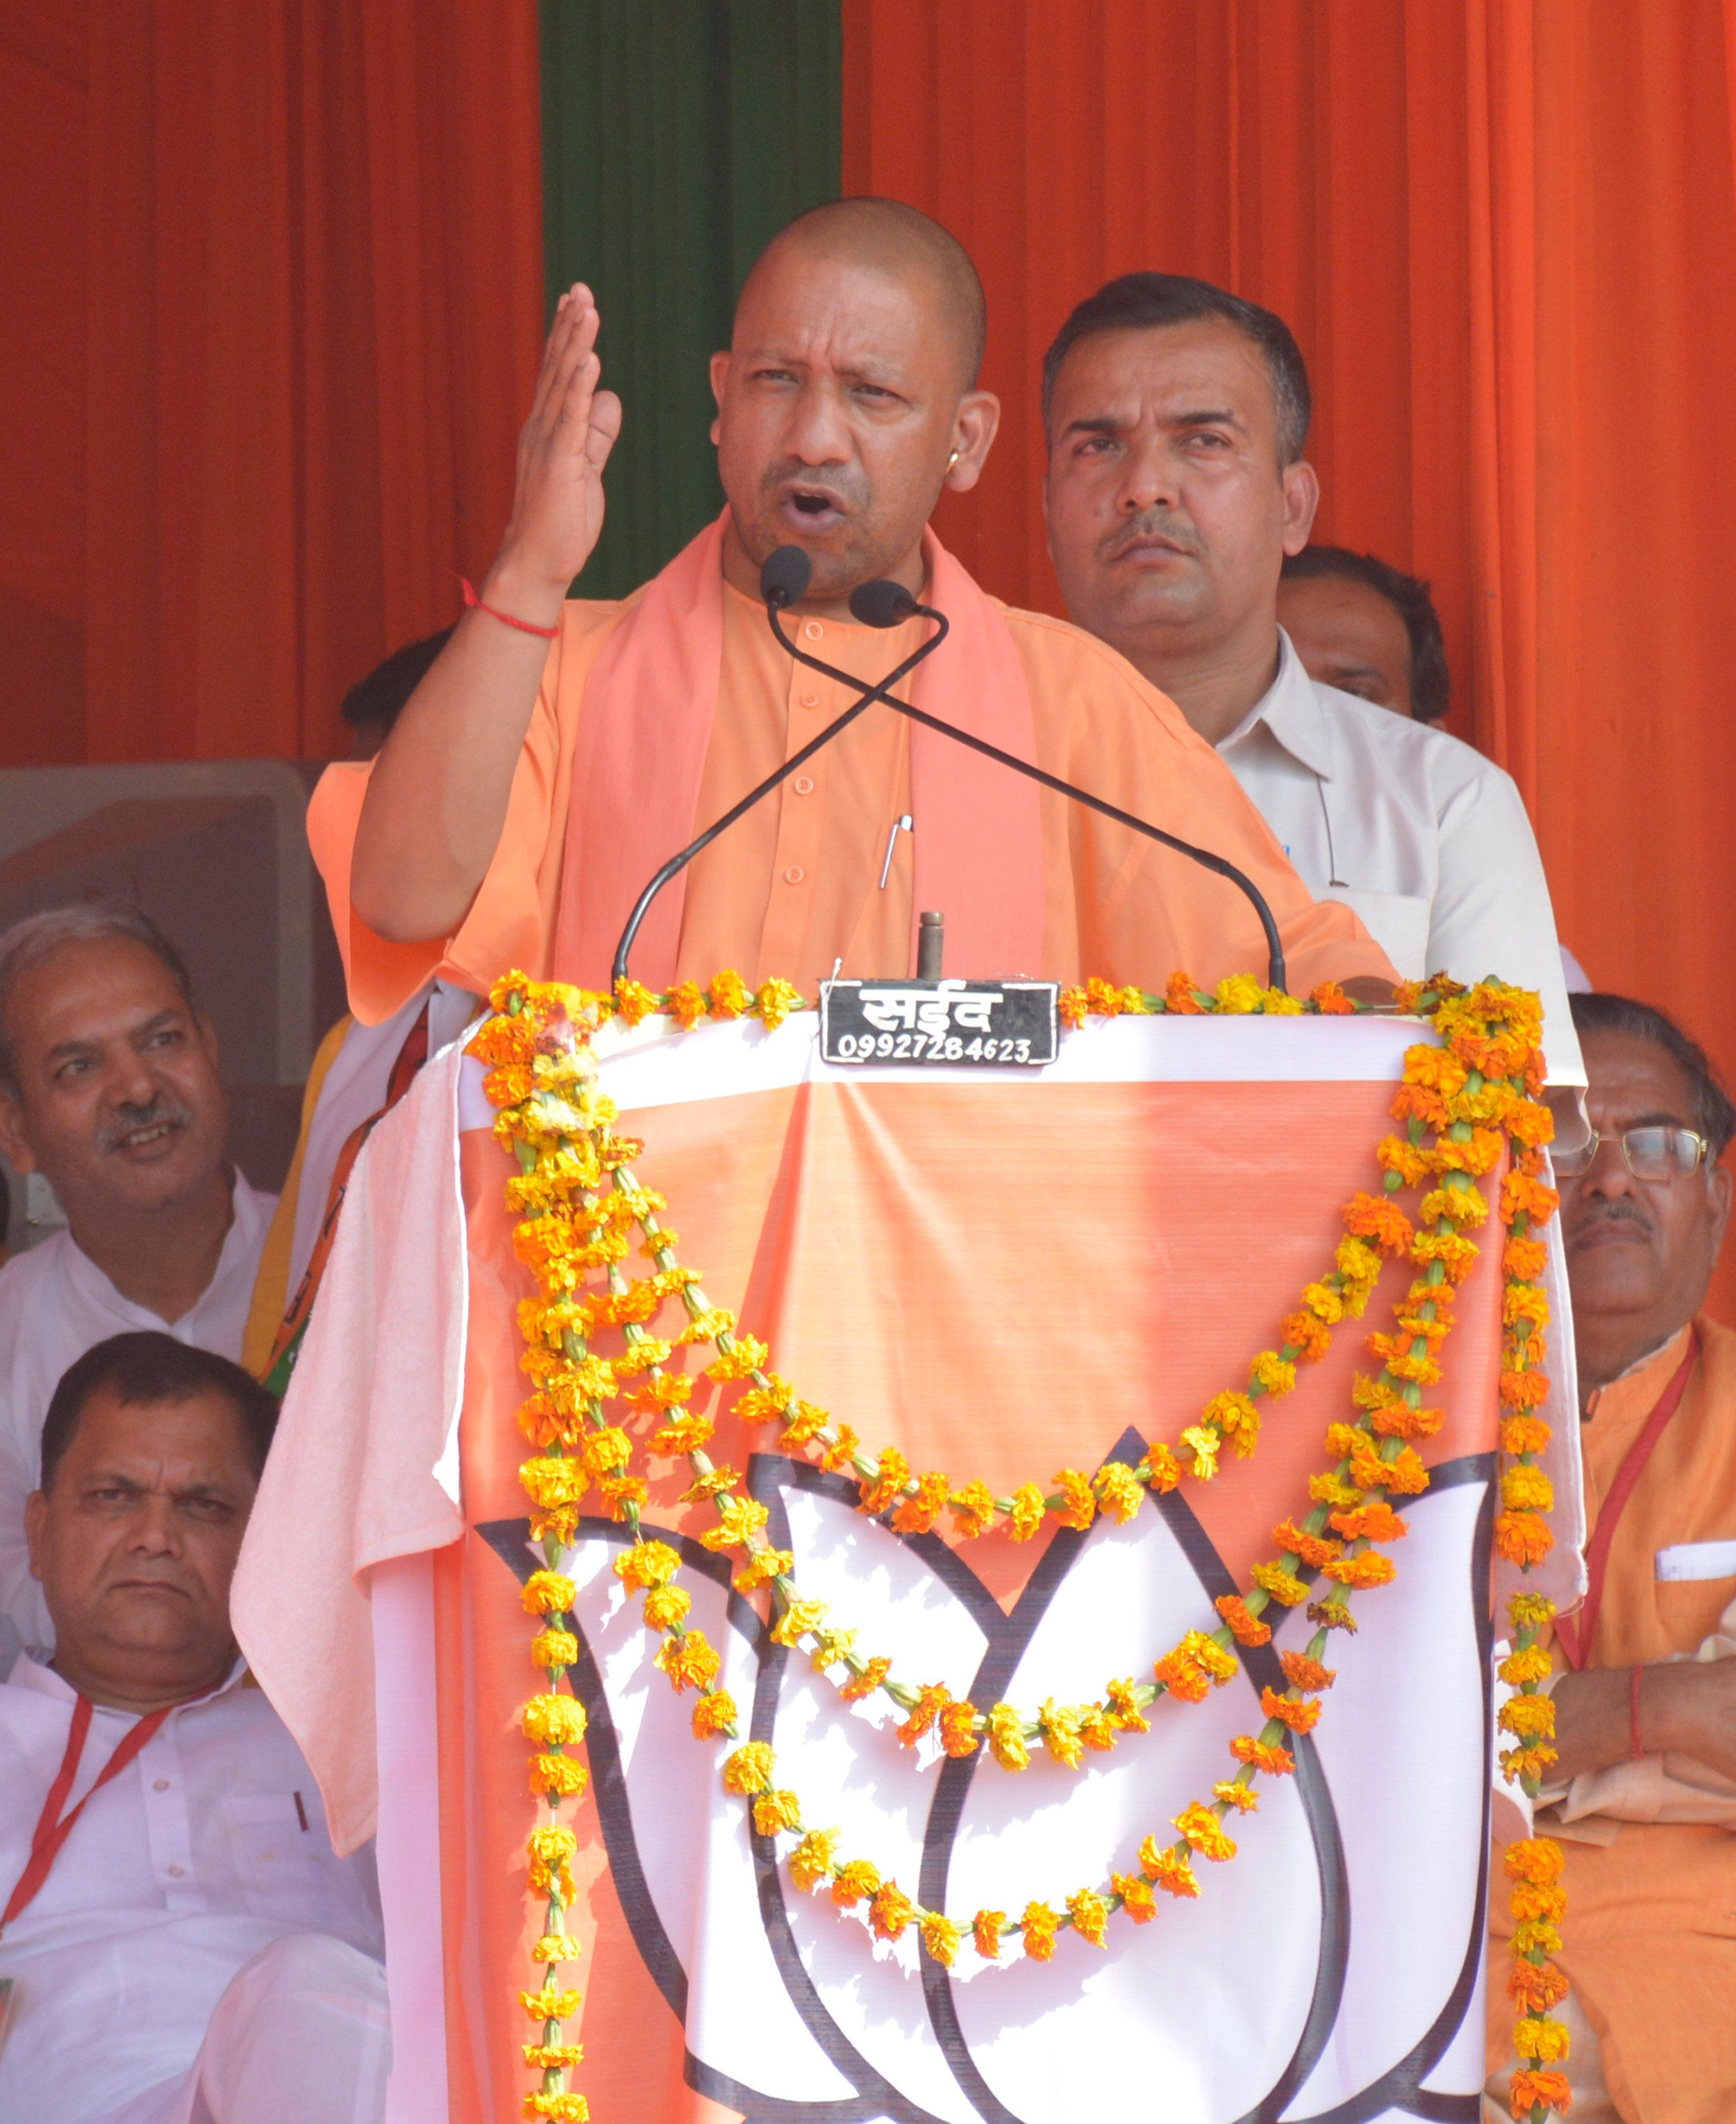 Yogi Adityanath addresses an election campaign rally at Ramleela Ground on April 9, 2019 in